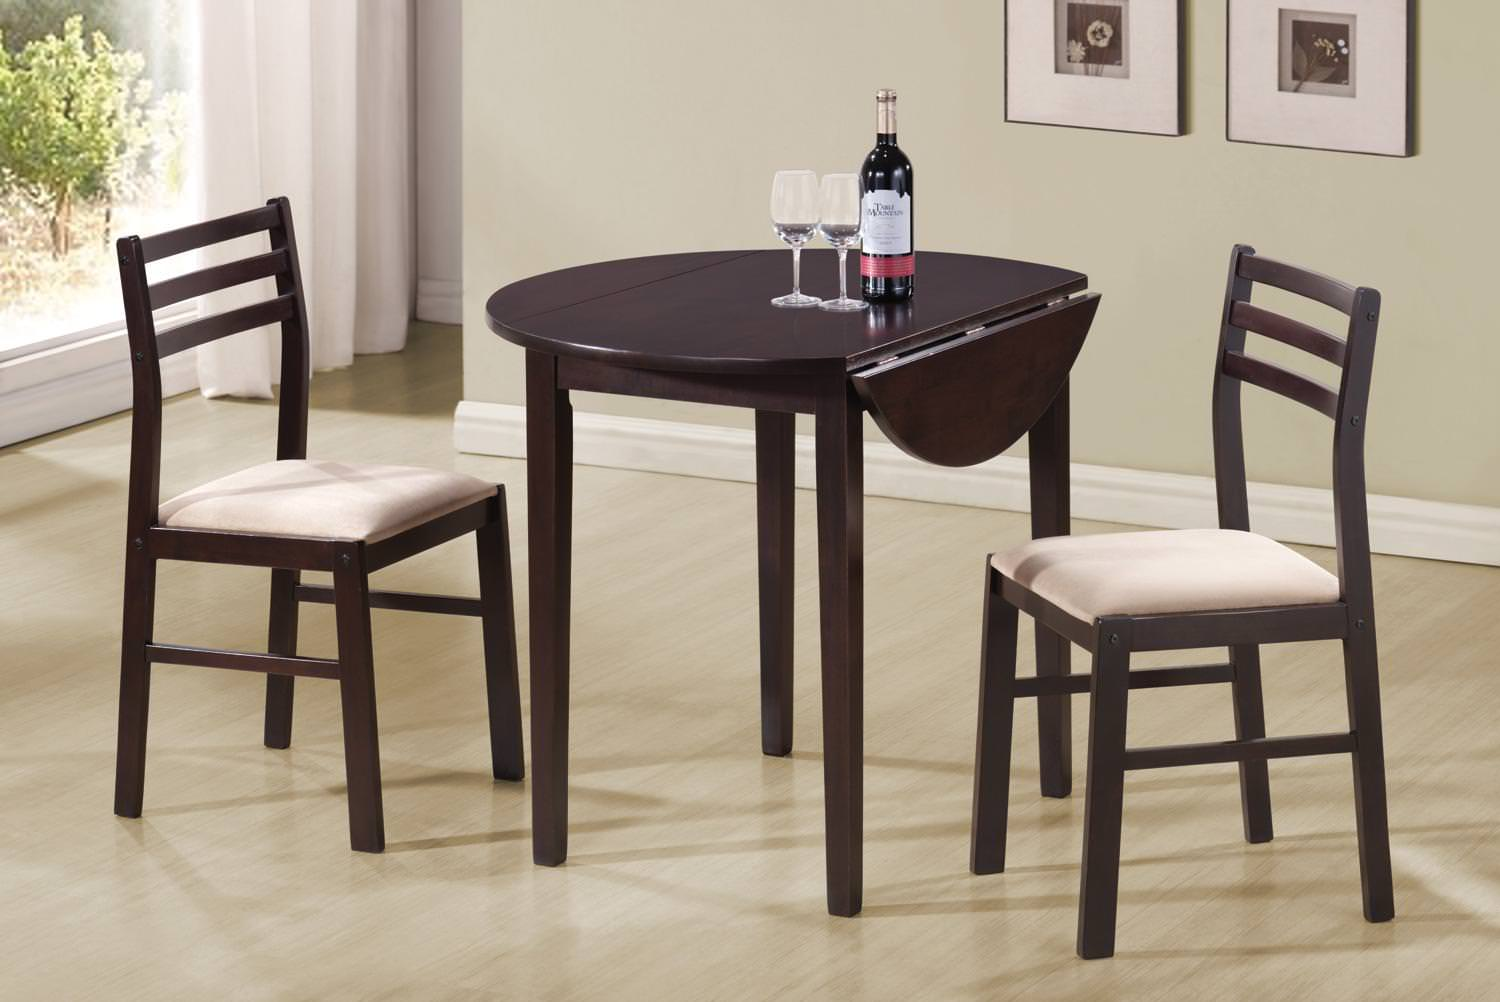 130005 3 Pcs Dining Set By Coaster Fine Furniture